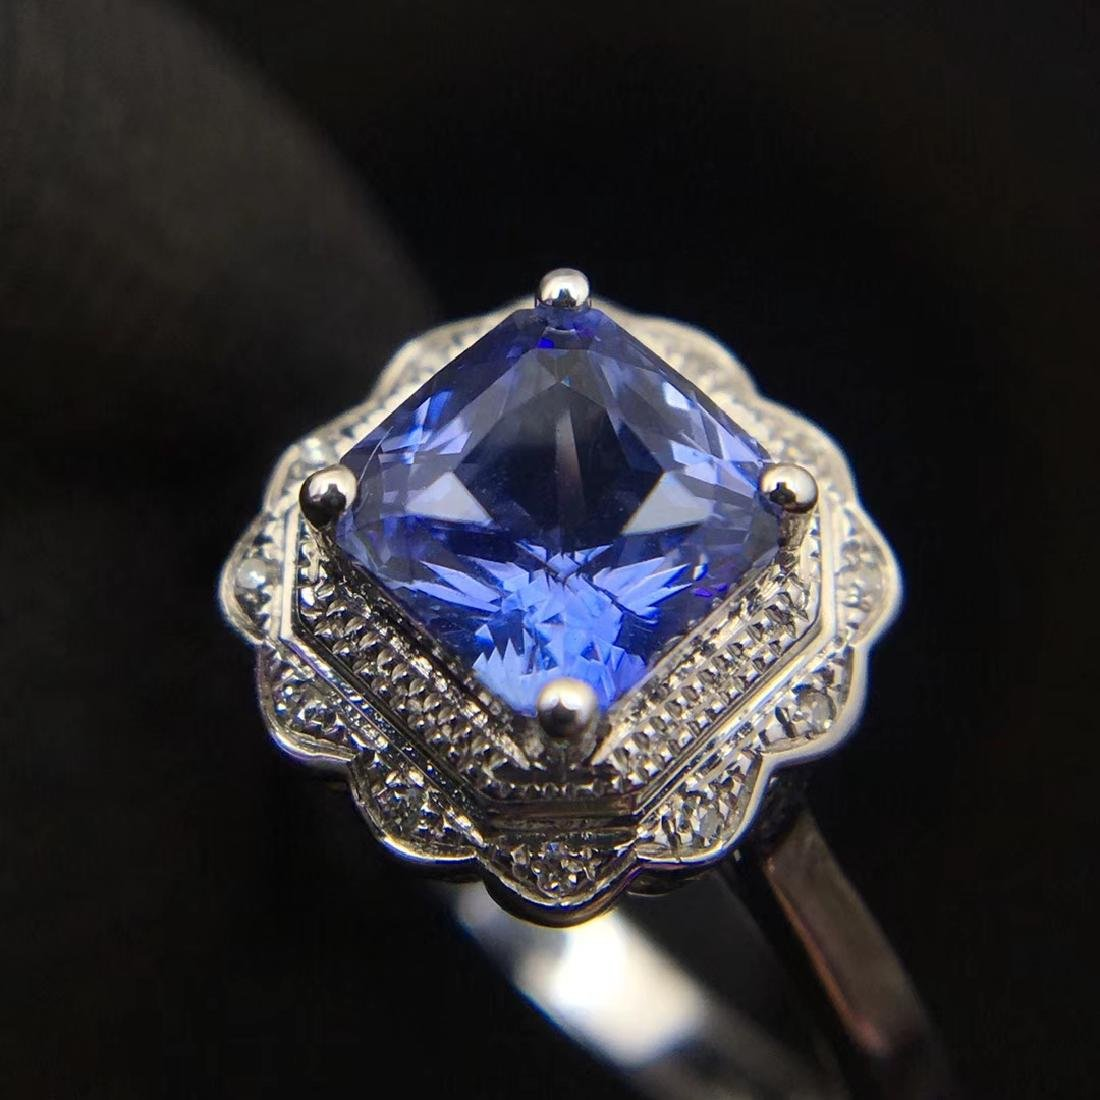 1.24ct Sapphire Ring in 18kt White Gold - 2